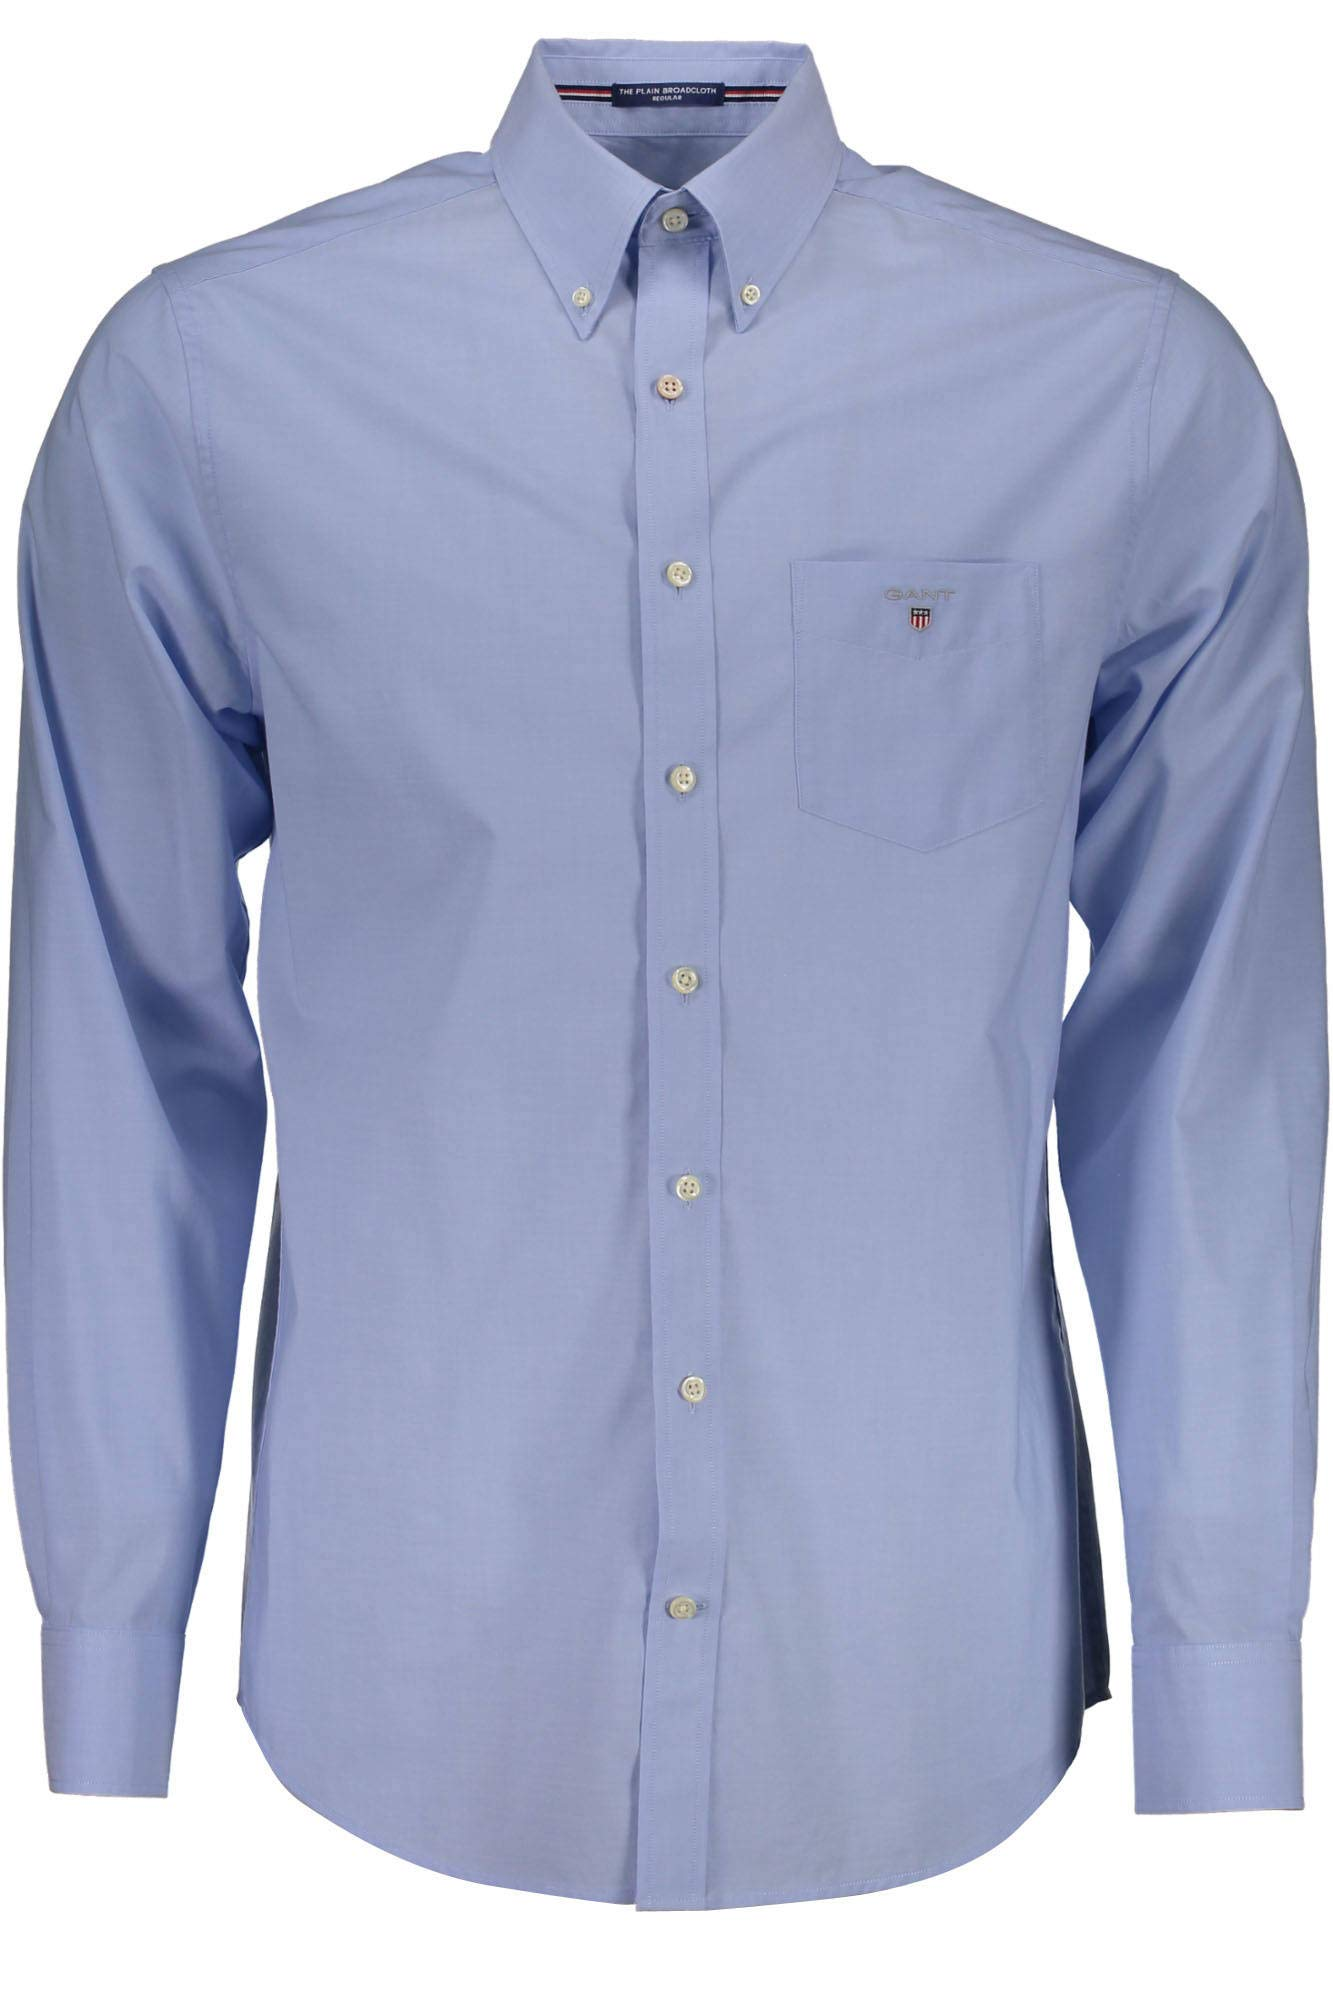 The CasualBleuhamptons Homme 304000 Gant BlueLarge Shirt Chemise Plain Broadcloth mNvOy0w8n